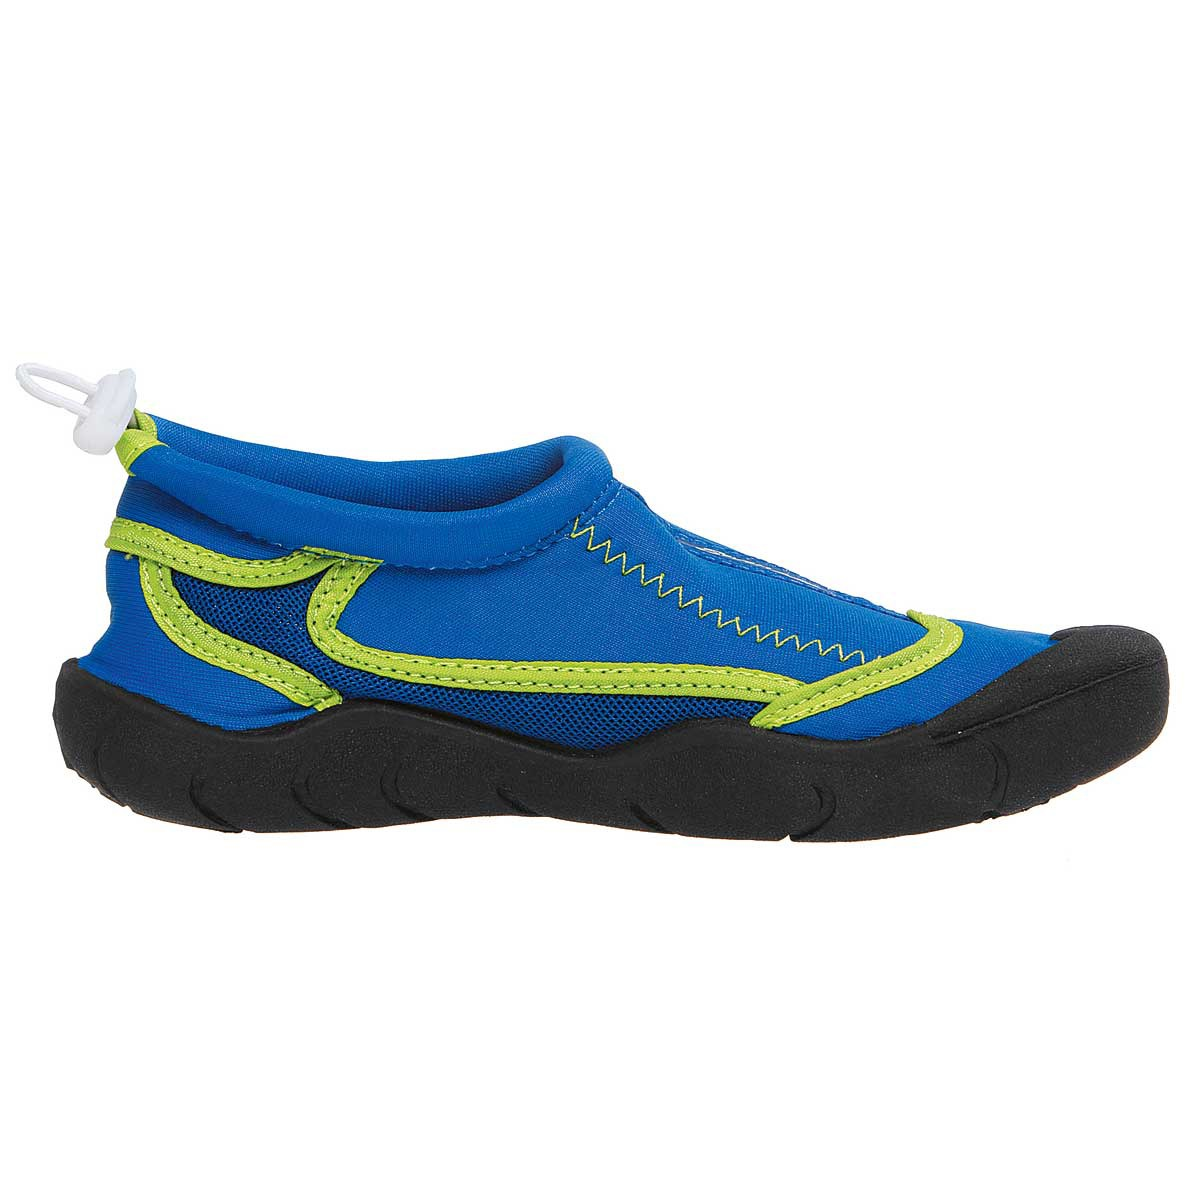 seven mile kids aqua reef shoes jqtcmqx